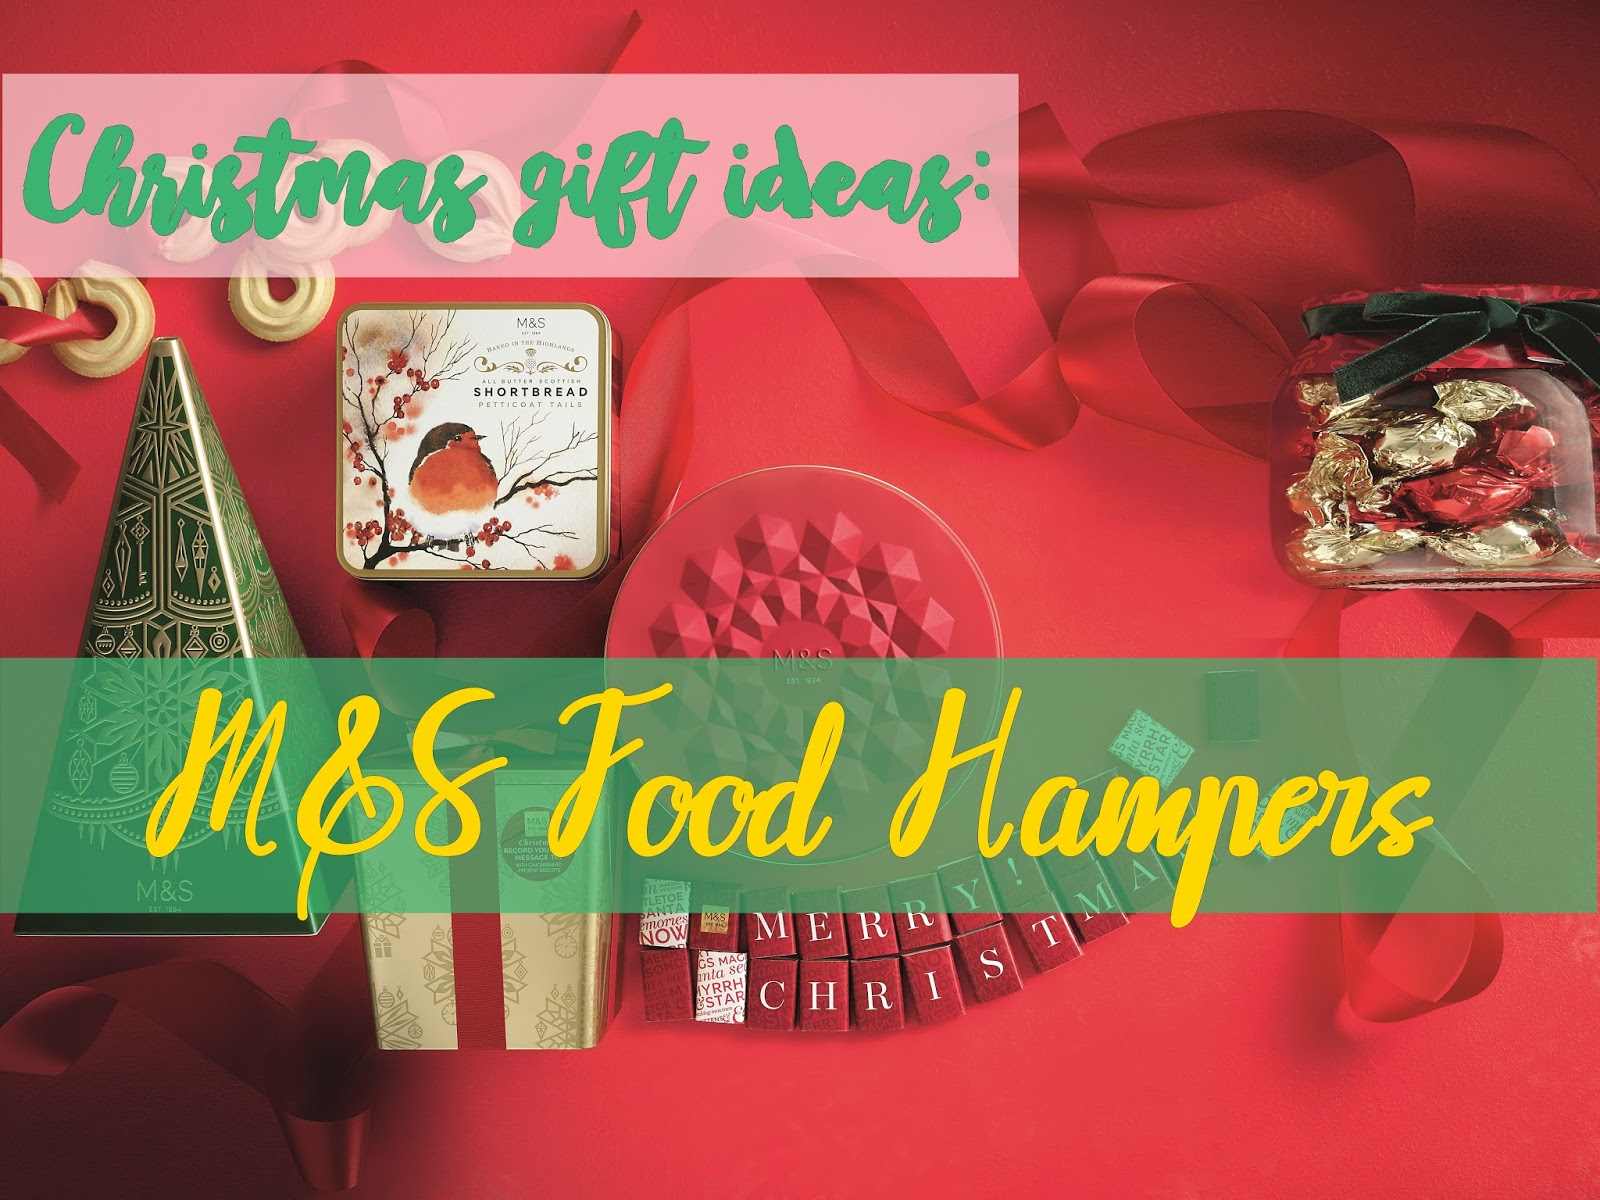 Christmas gift ideas marks spencer food hampers my notebook christmas gift ideas marks spencer food hampers kristyandbryce Image collections